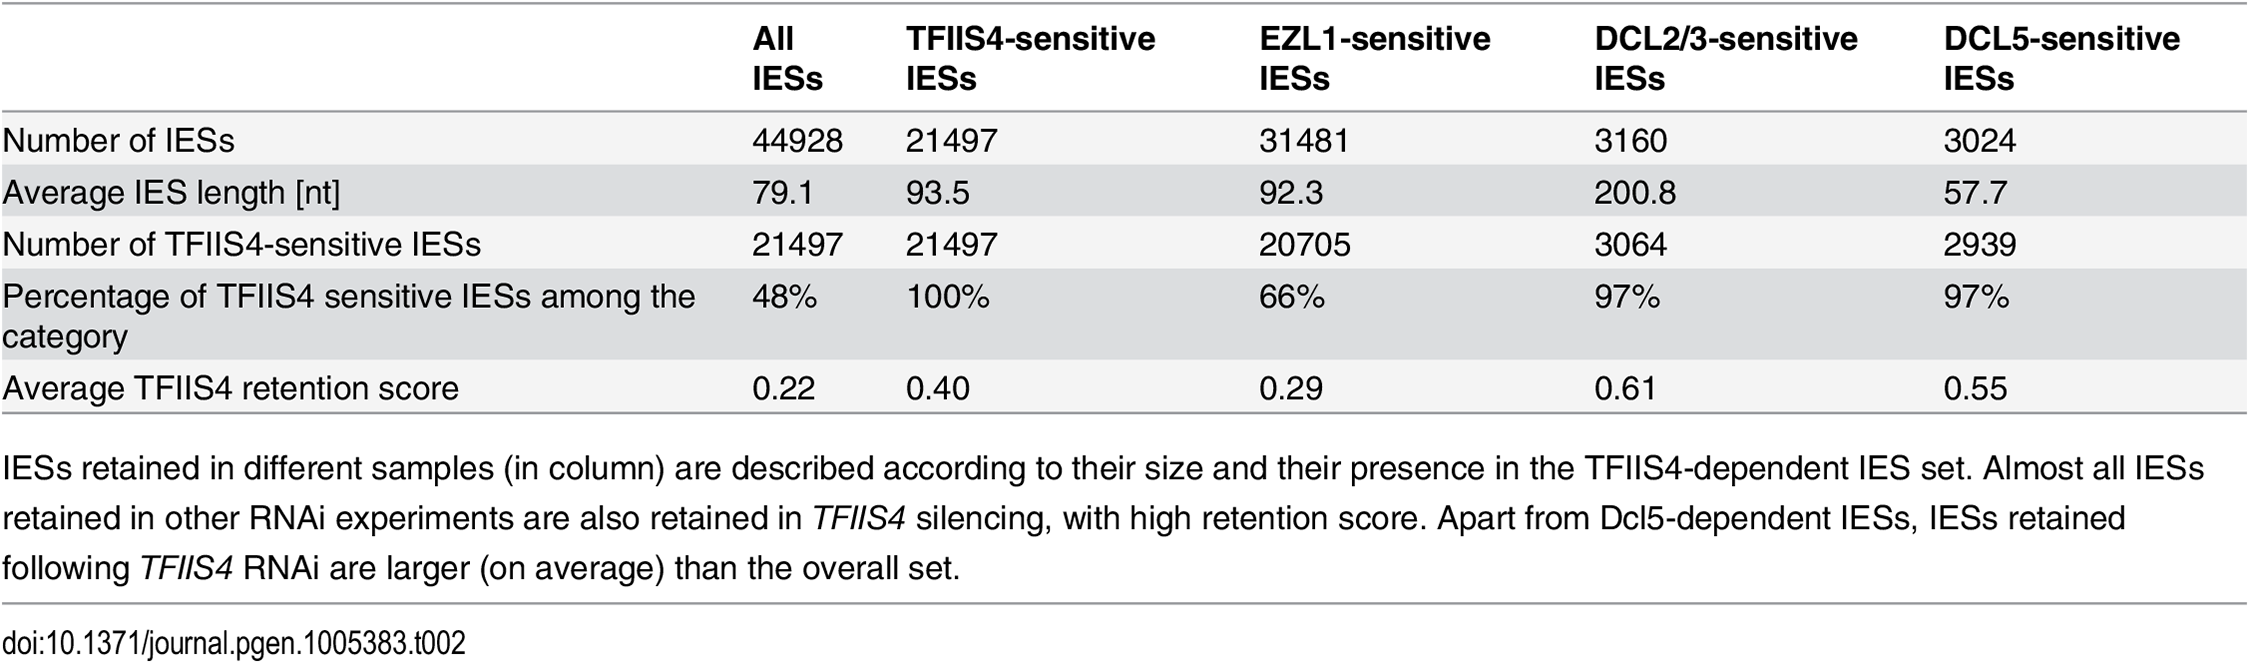 Global analysis of genome rearrangements in <i>TFIIS4</i> silencing—comparison with <i>EZL1</i>, <i>DCL2/3</i> and <i>DCL5</i>.